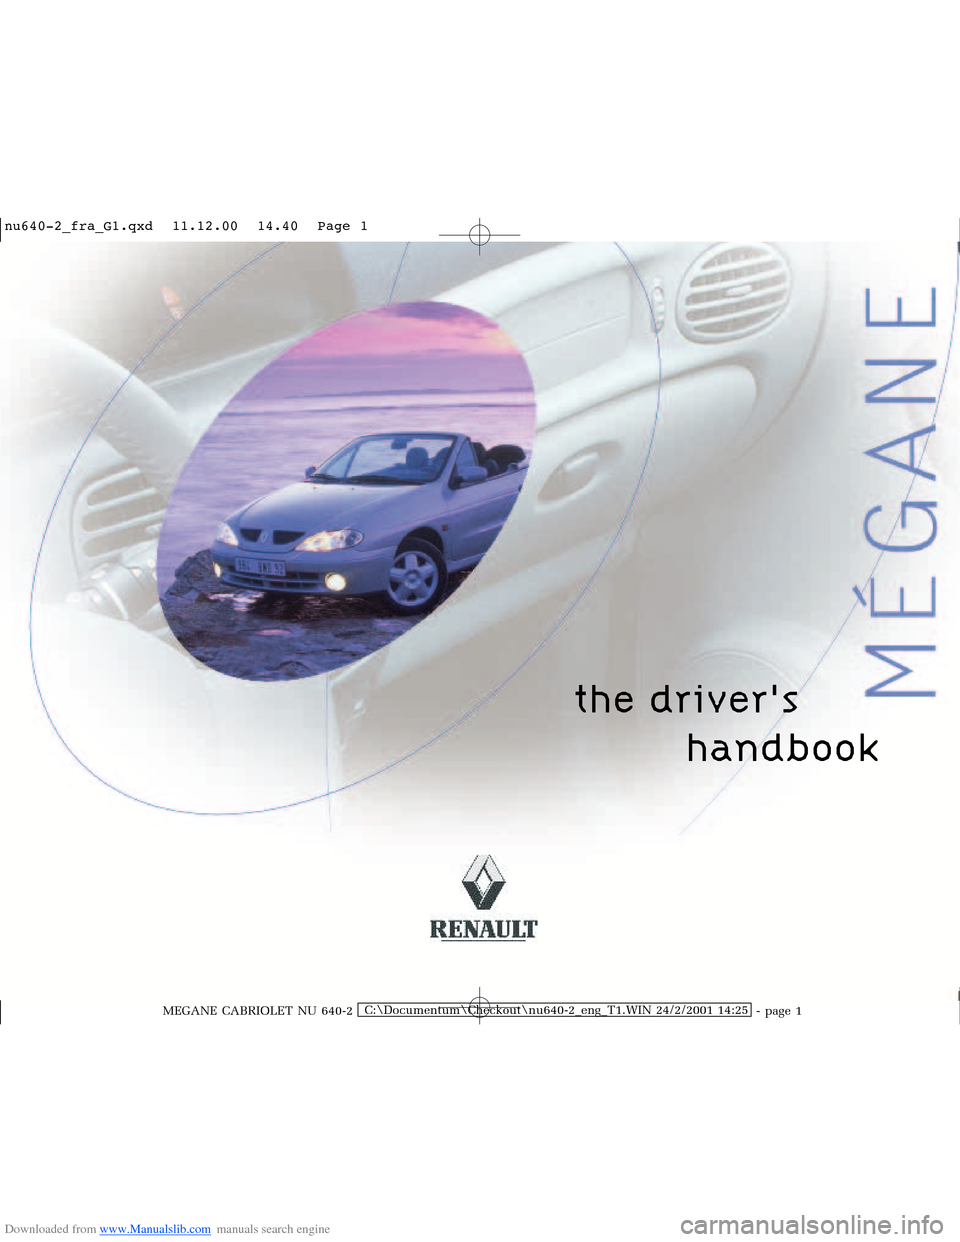 RENAULT MEGANE 2000 X64 / 1.G Owners Manual, Page 1